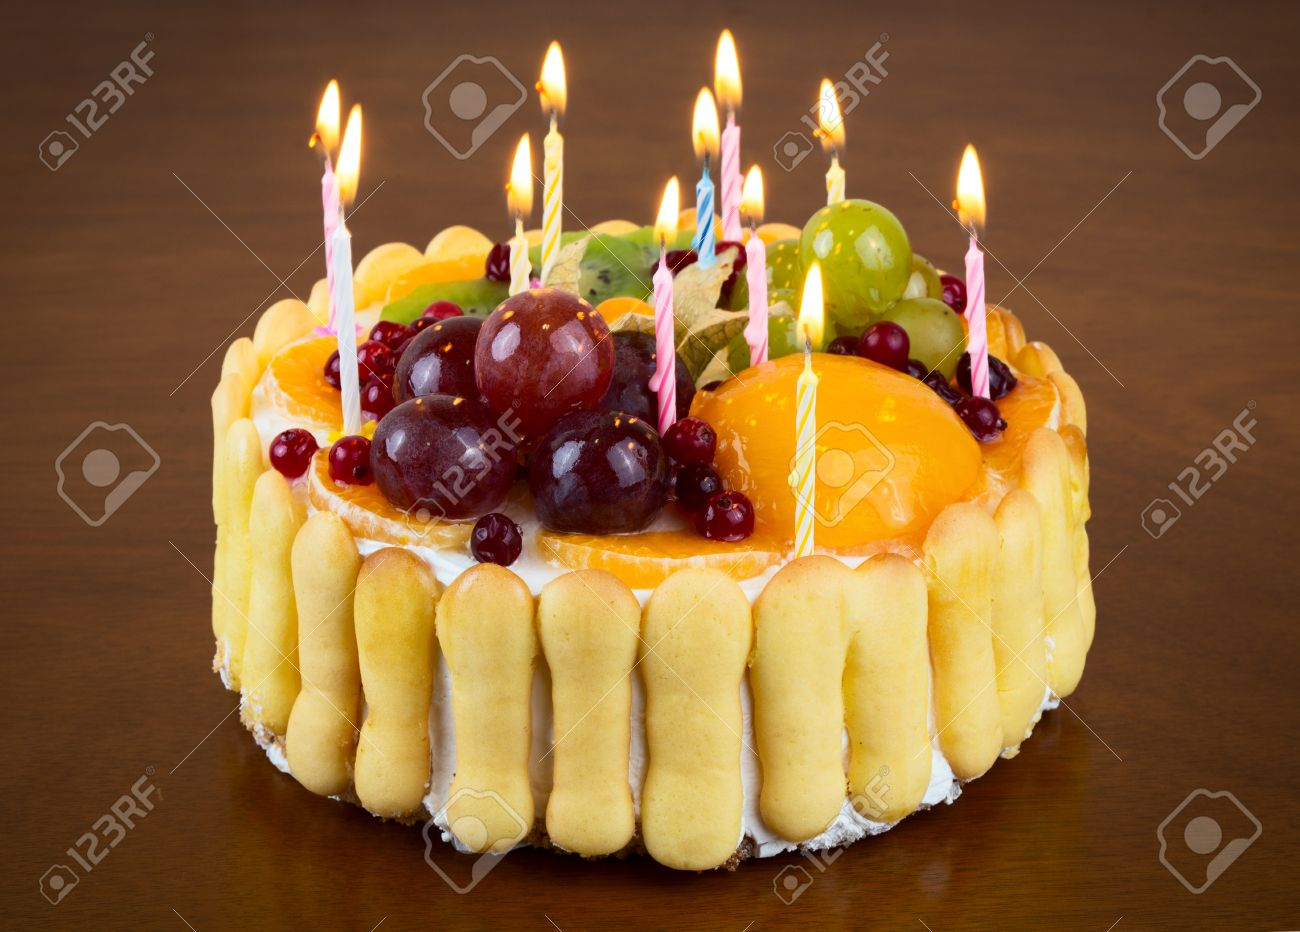 Happy Birthday Fruit Cake With Candles On Wooden Table Background